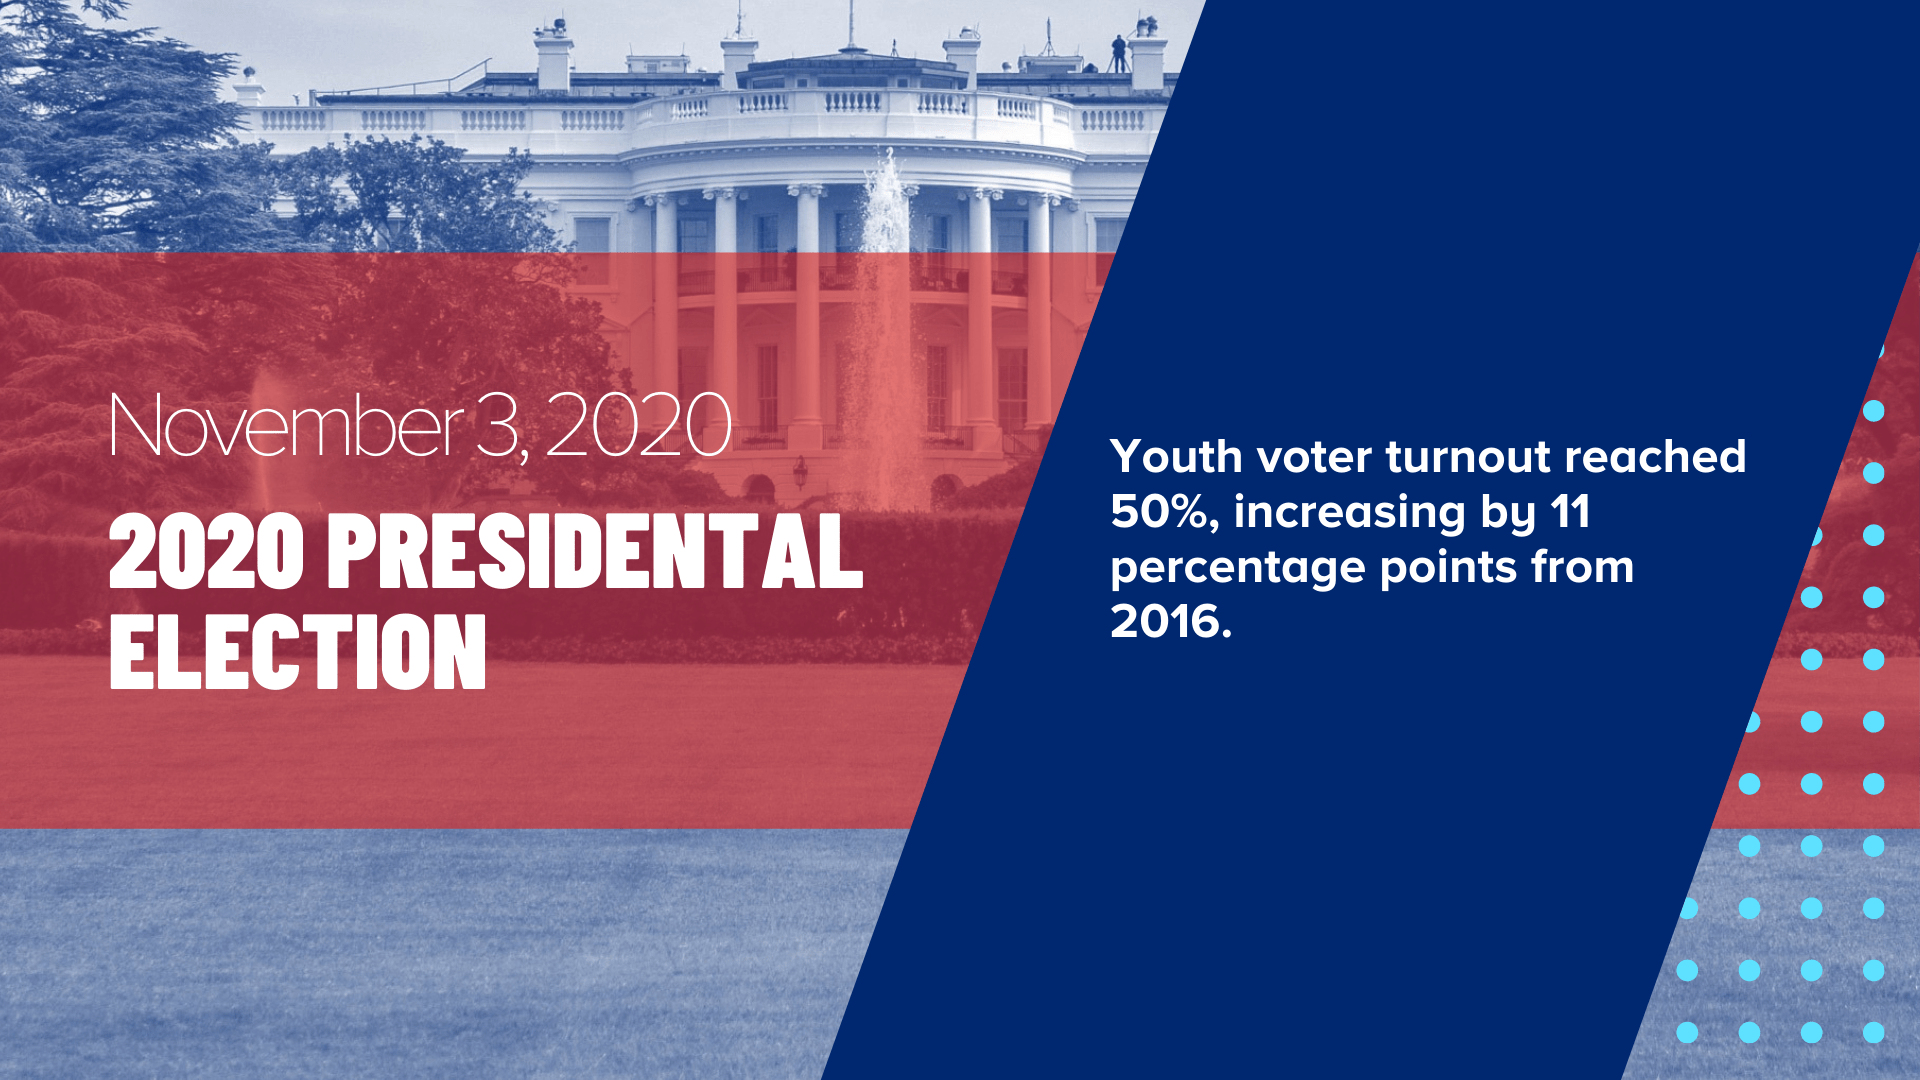 November 3, 2020 - 2020 Presidential Election - Youth voter turnout reached 50%, increasing by 11 percentage points from 2016.